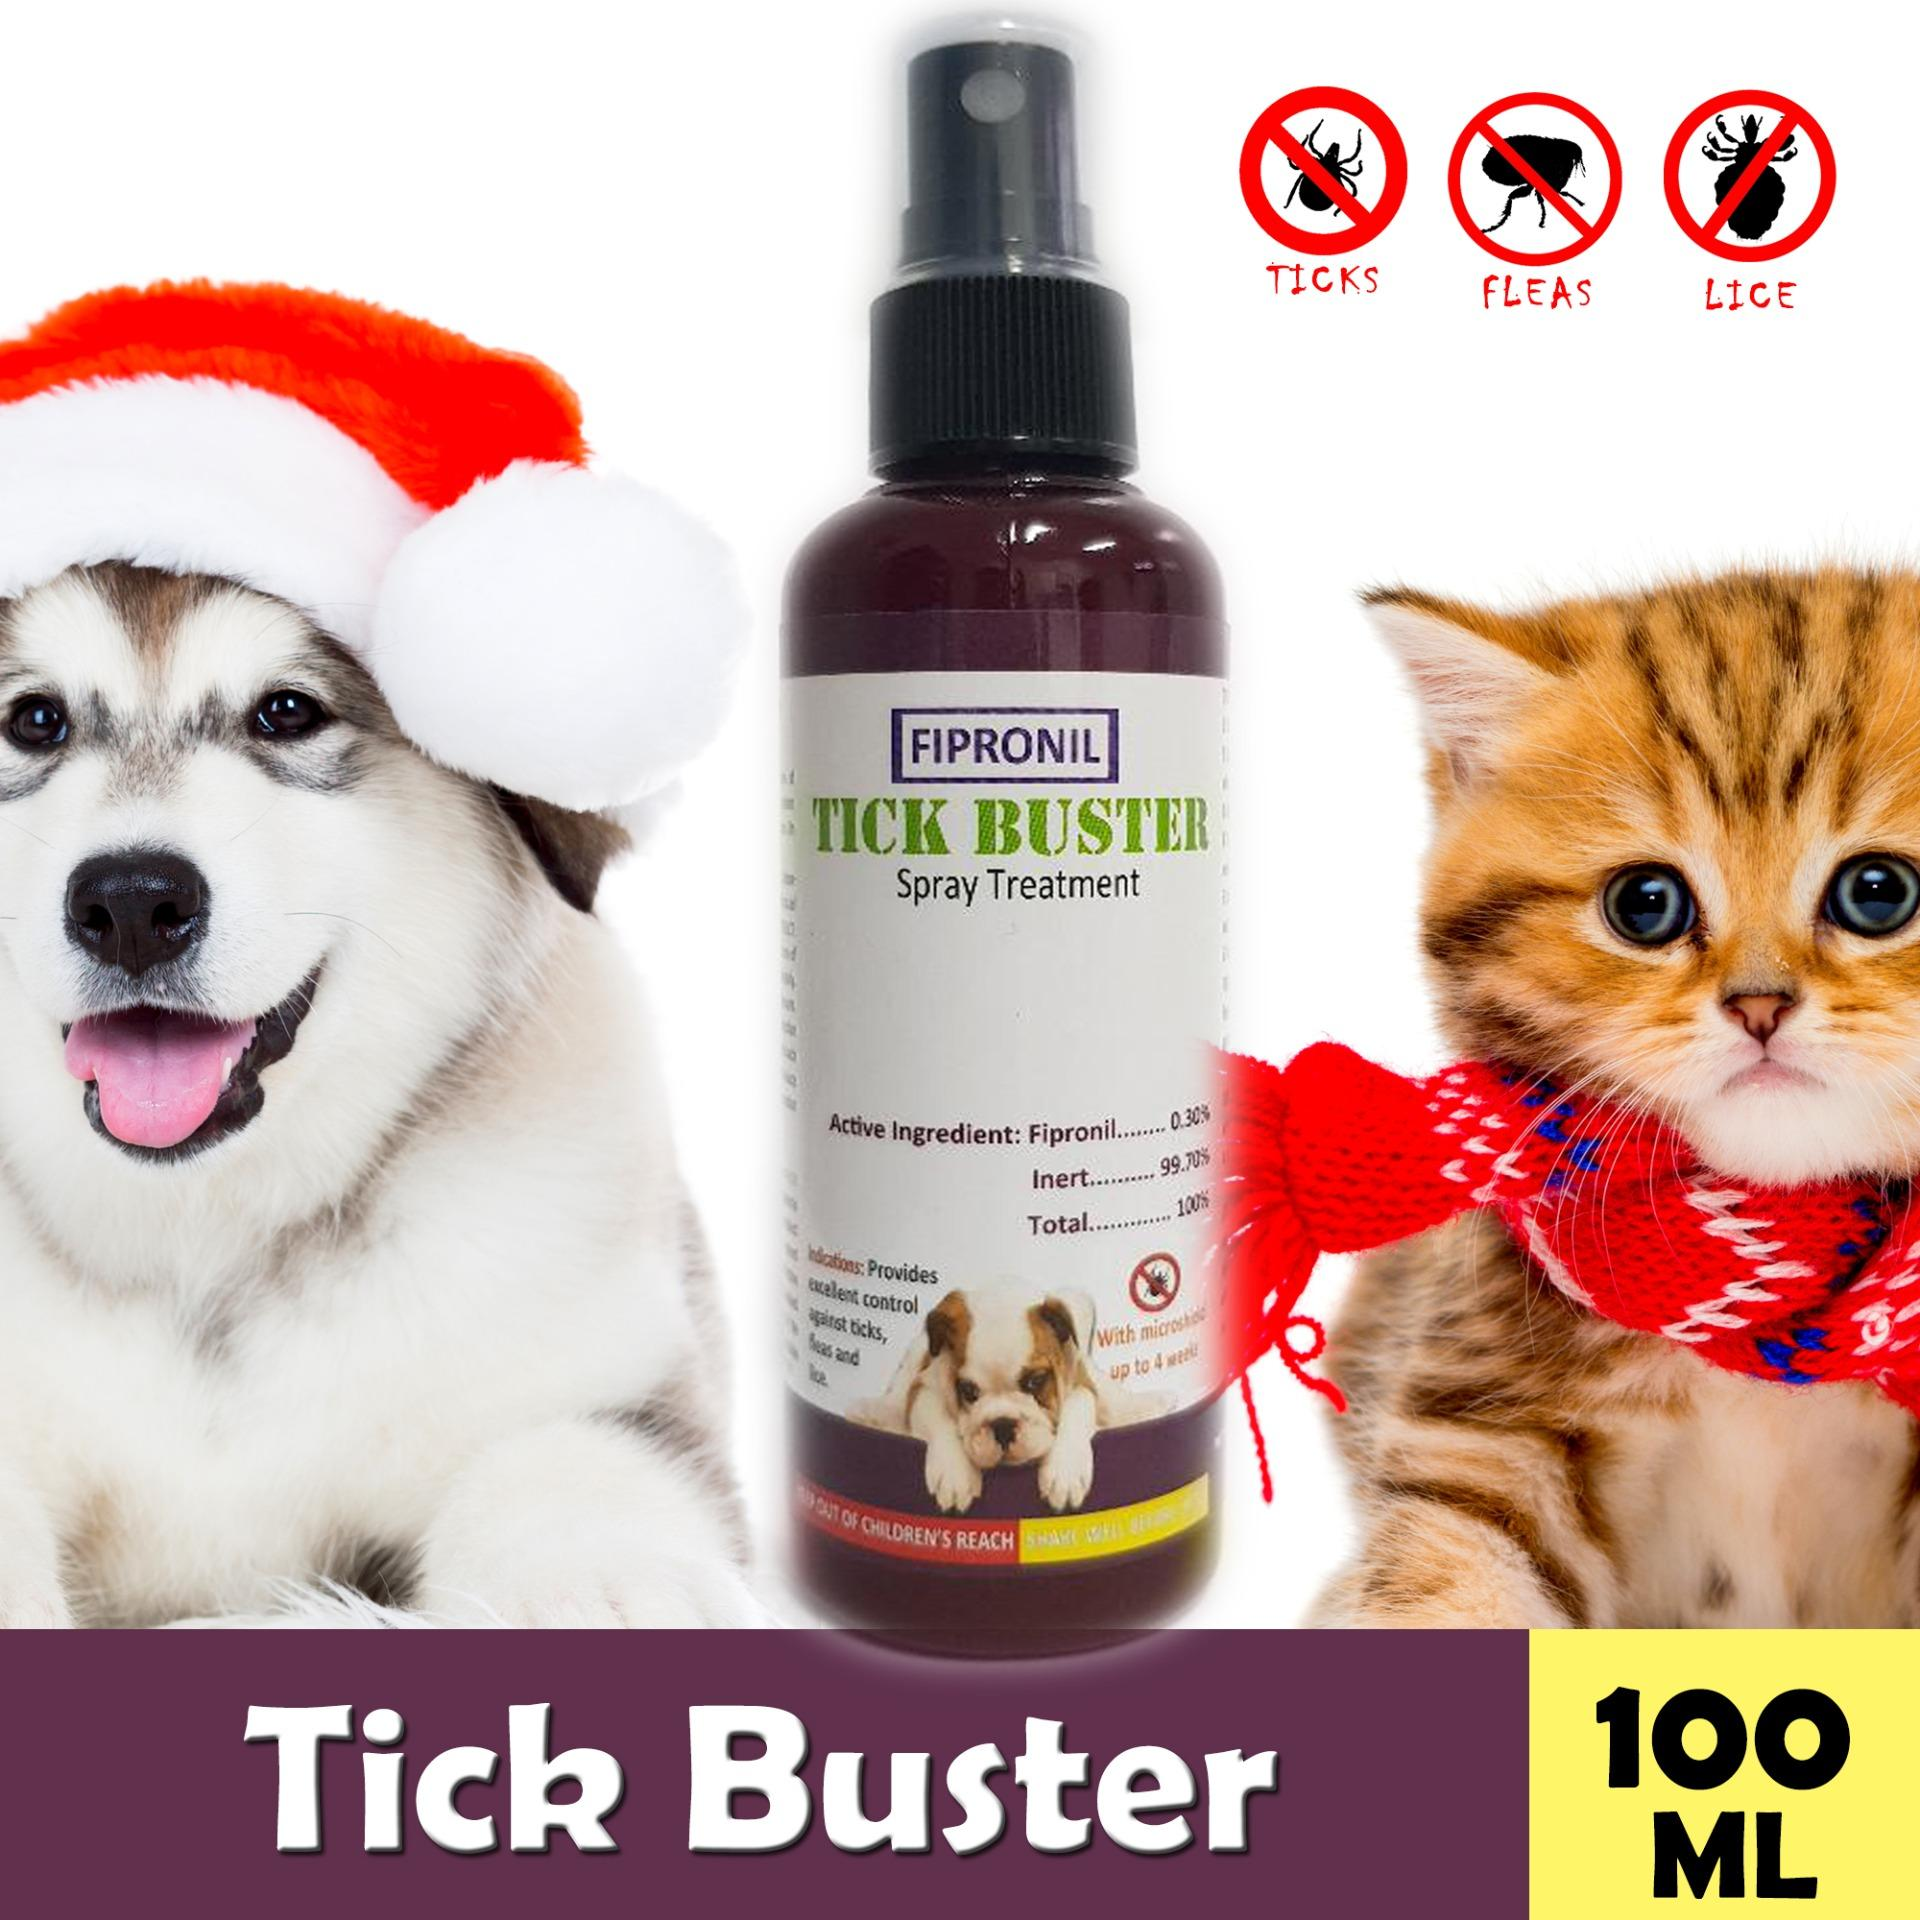 Dog Shop For Sale Dog Supplies Online Brands Prices Reviews In